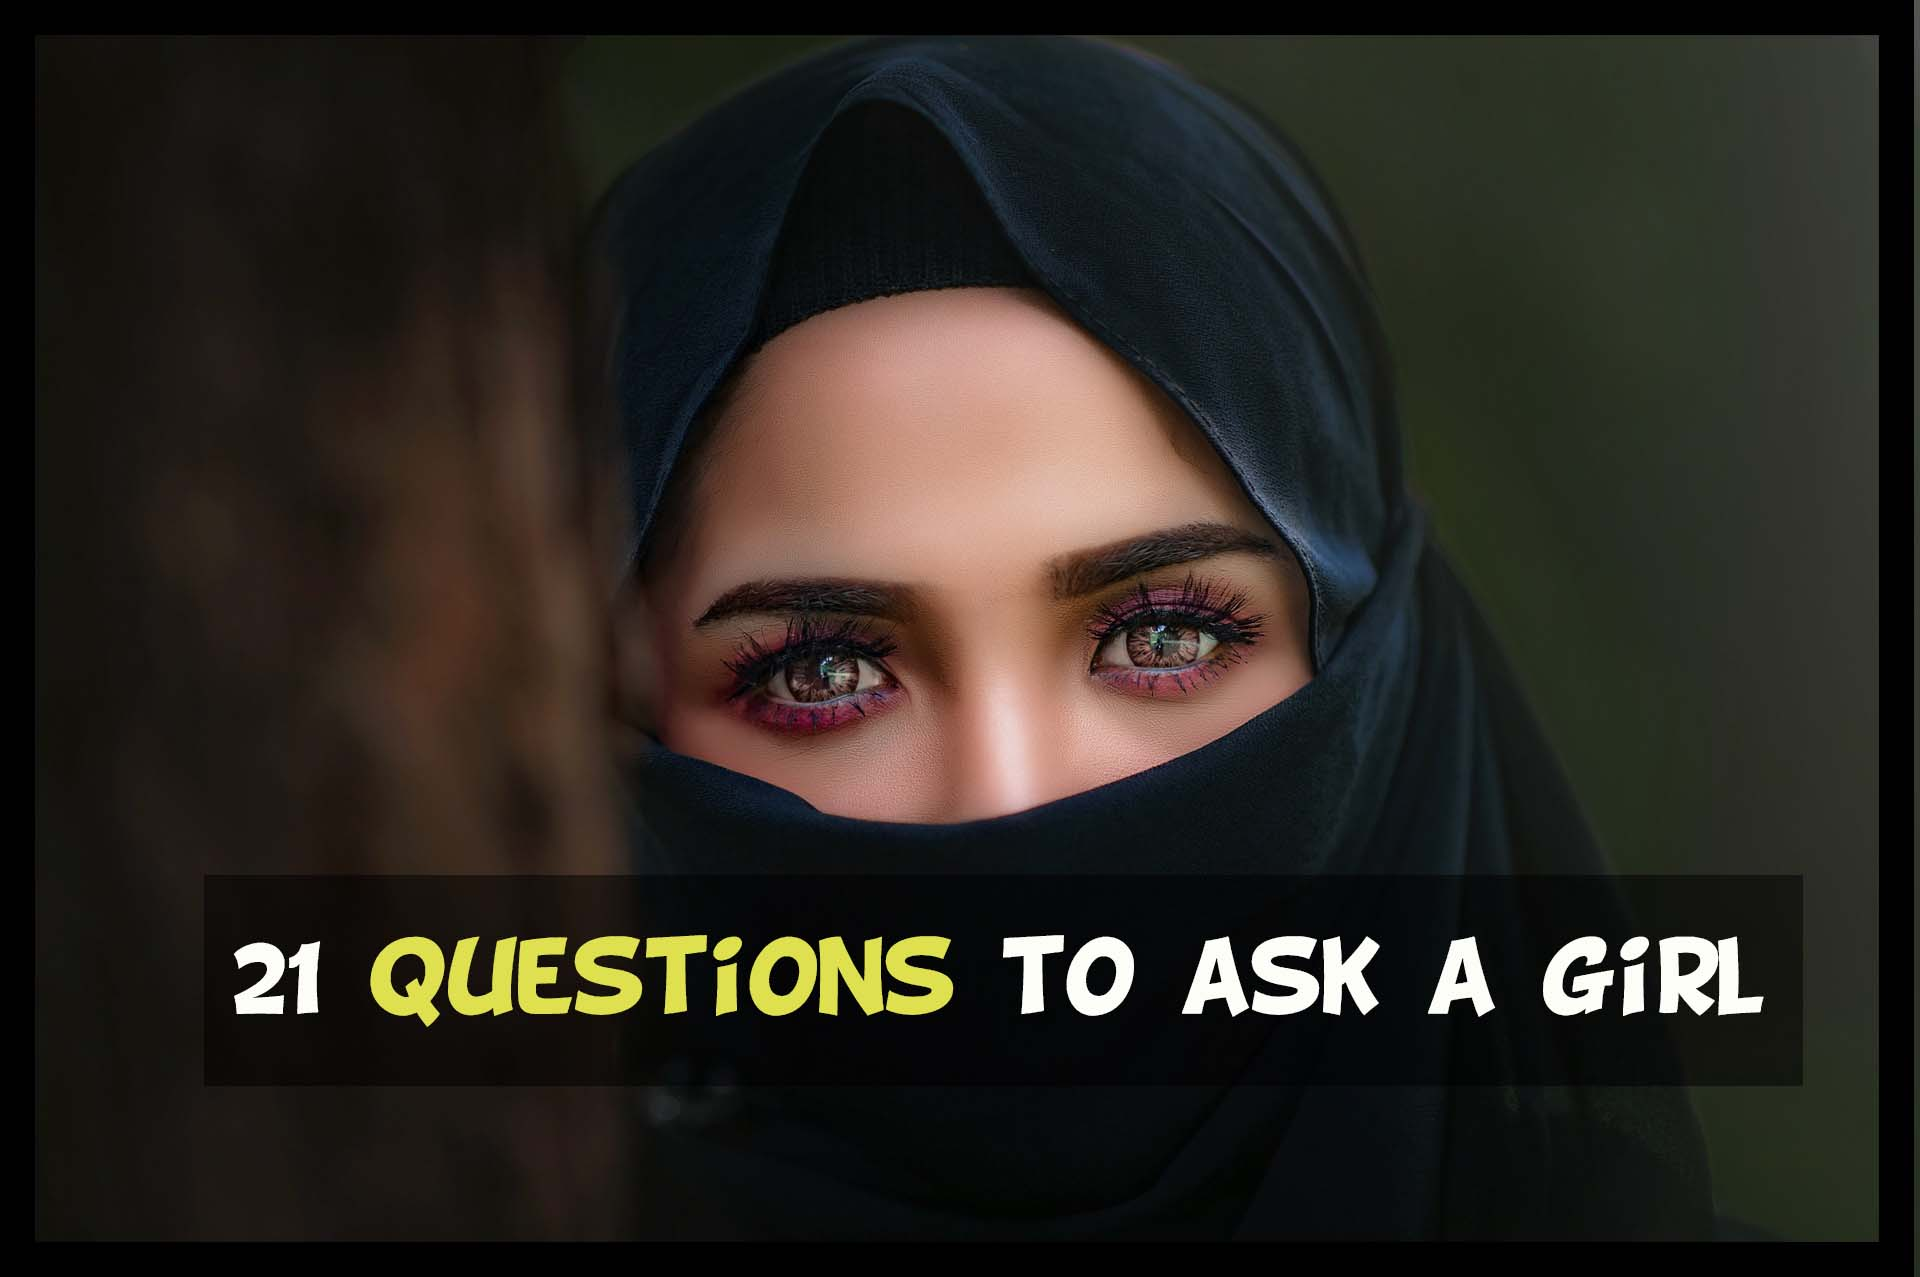 21 questions to a girl